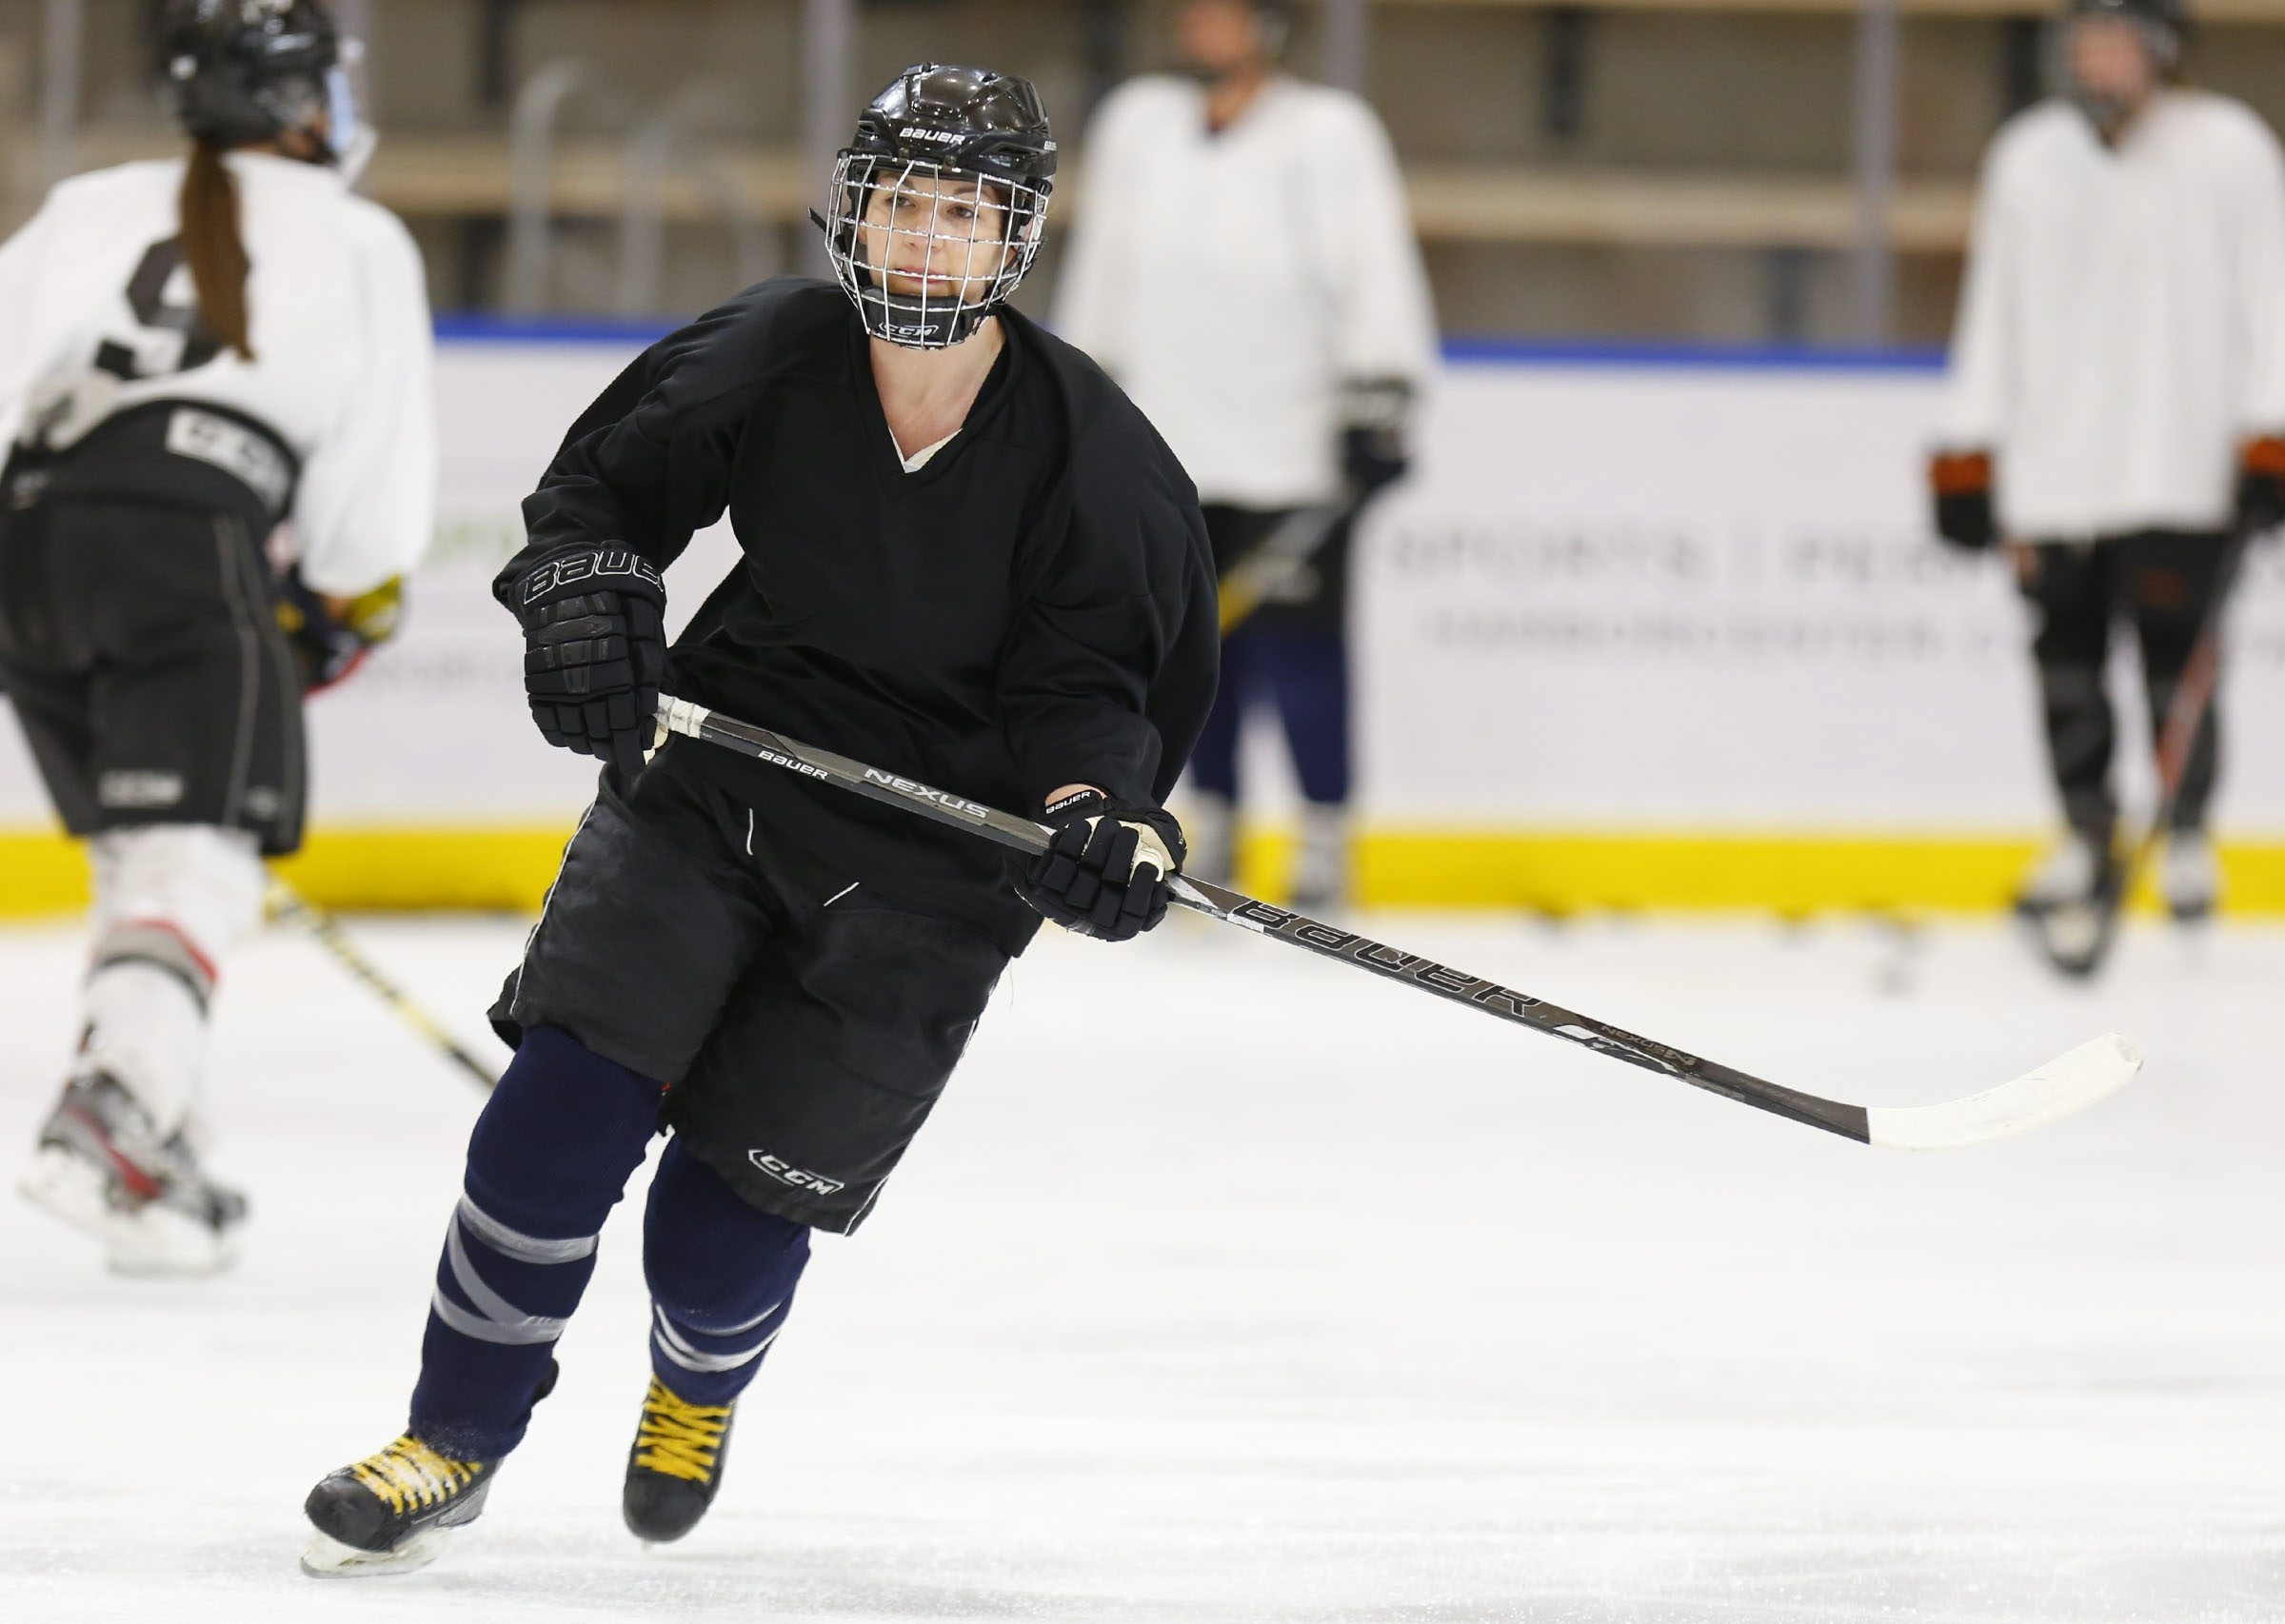 Amanda Todd of Lancaster and Syracuse University goes through drills during the National Women's Hockey League training camp at the HarborCenter on Saturday.